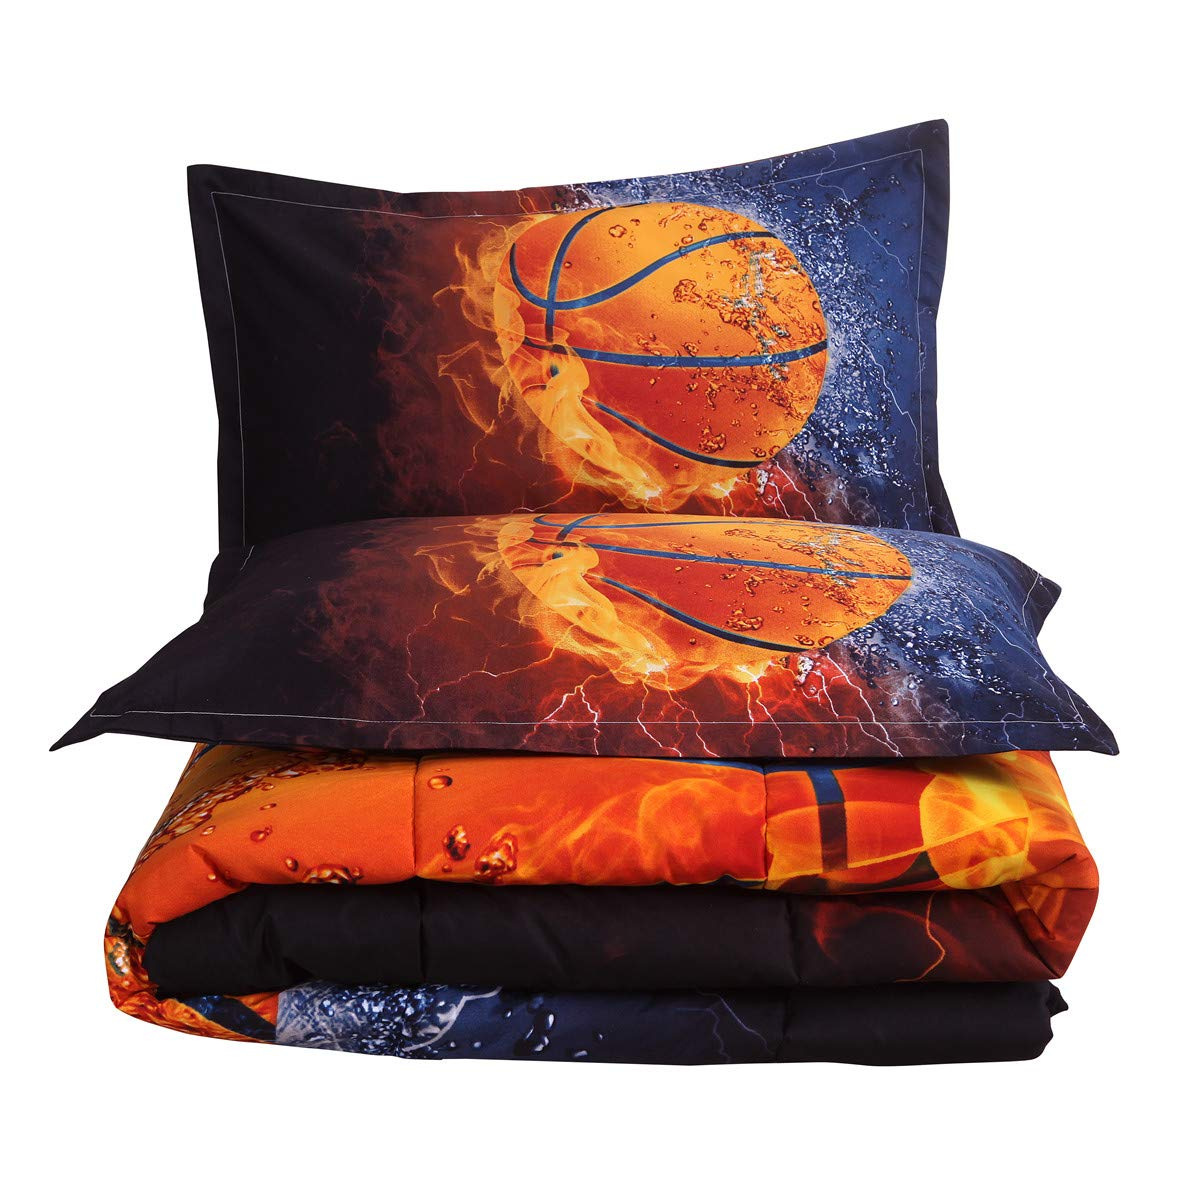 NTBED Basketball Comforter Sets for Boys Teens Sports Bedding Reversible Printed Quilt Set Full with 2 Matching Pillowcases